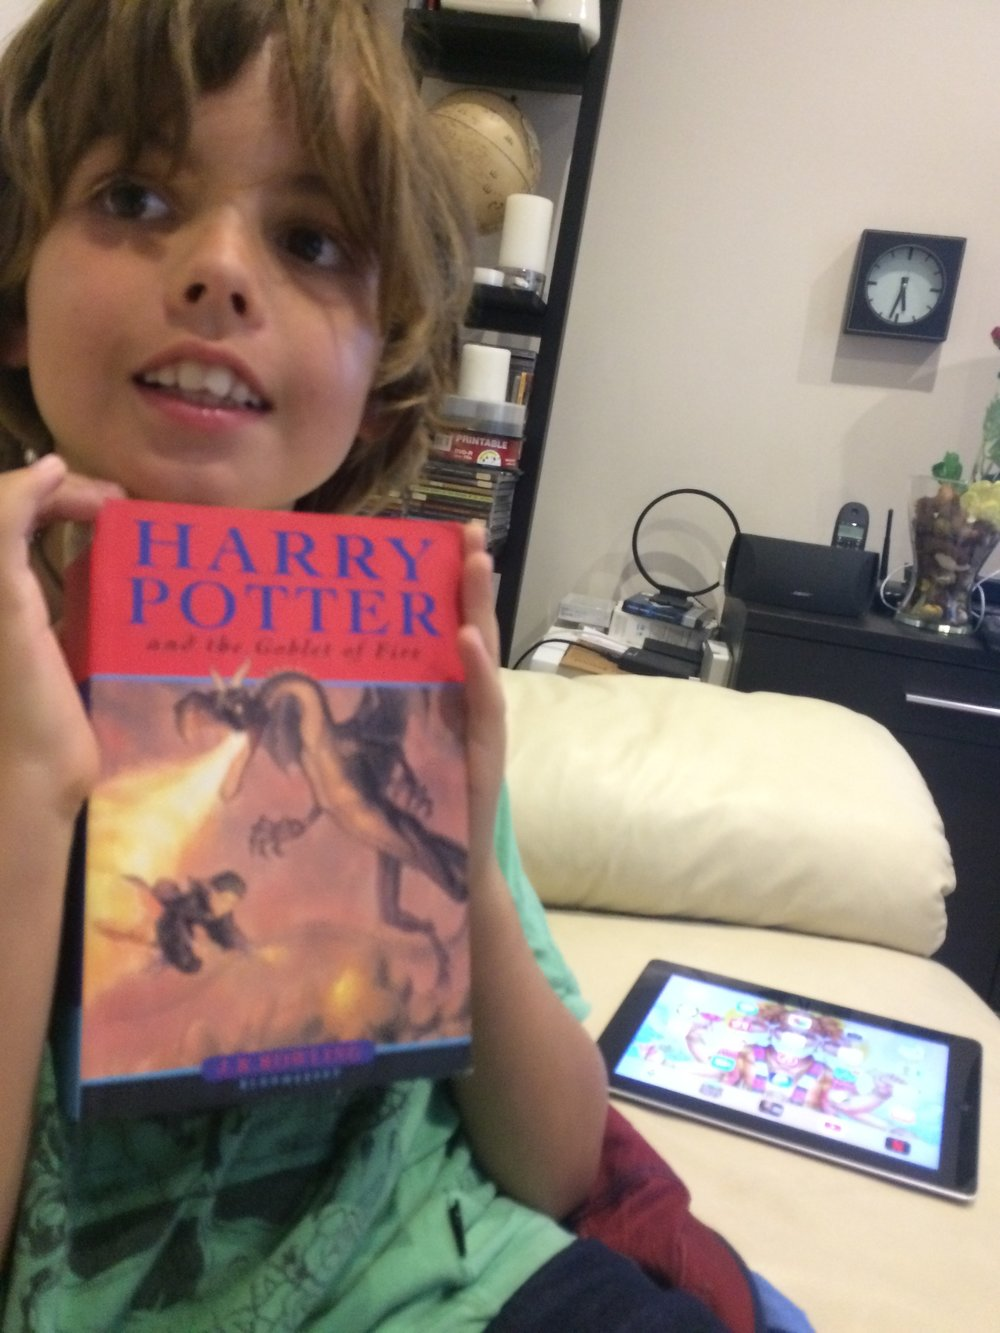 this is the book called HARRY POTTER AND THE GOBLETS OF FIRE and its really hard to read it. I reckon the cover looks epic with a dragon and Harry Potter.